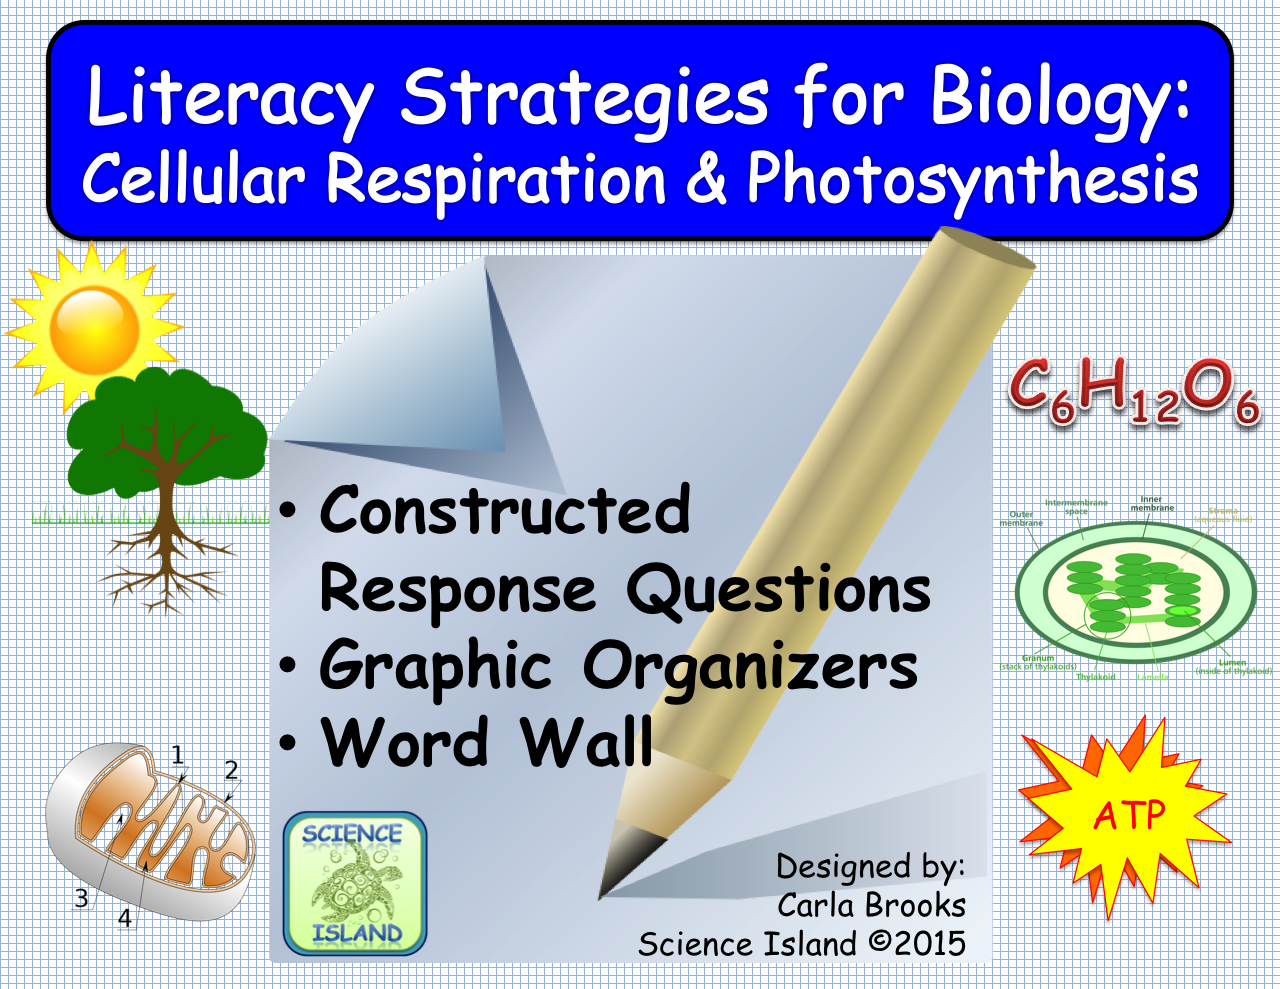 Literacy Strategies for Biology Cellular Respiration and